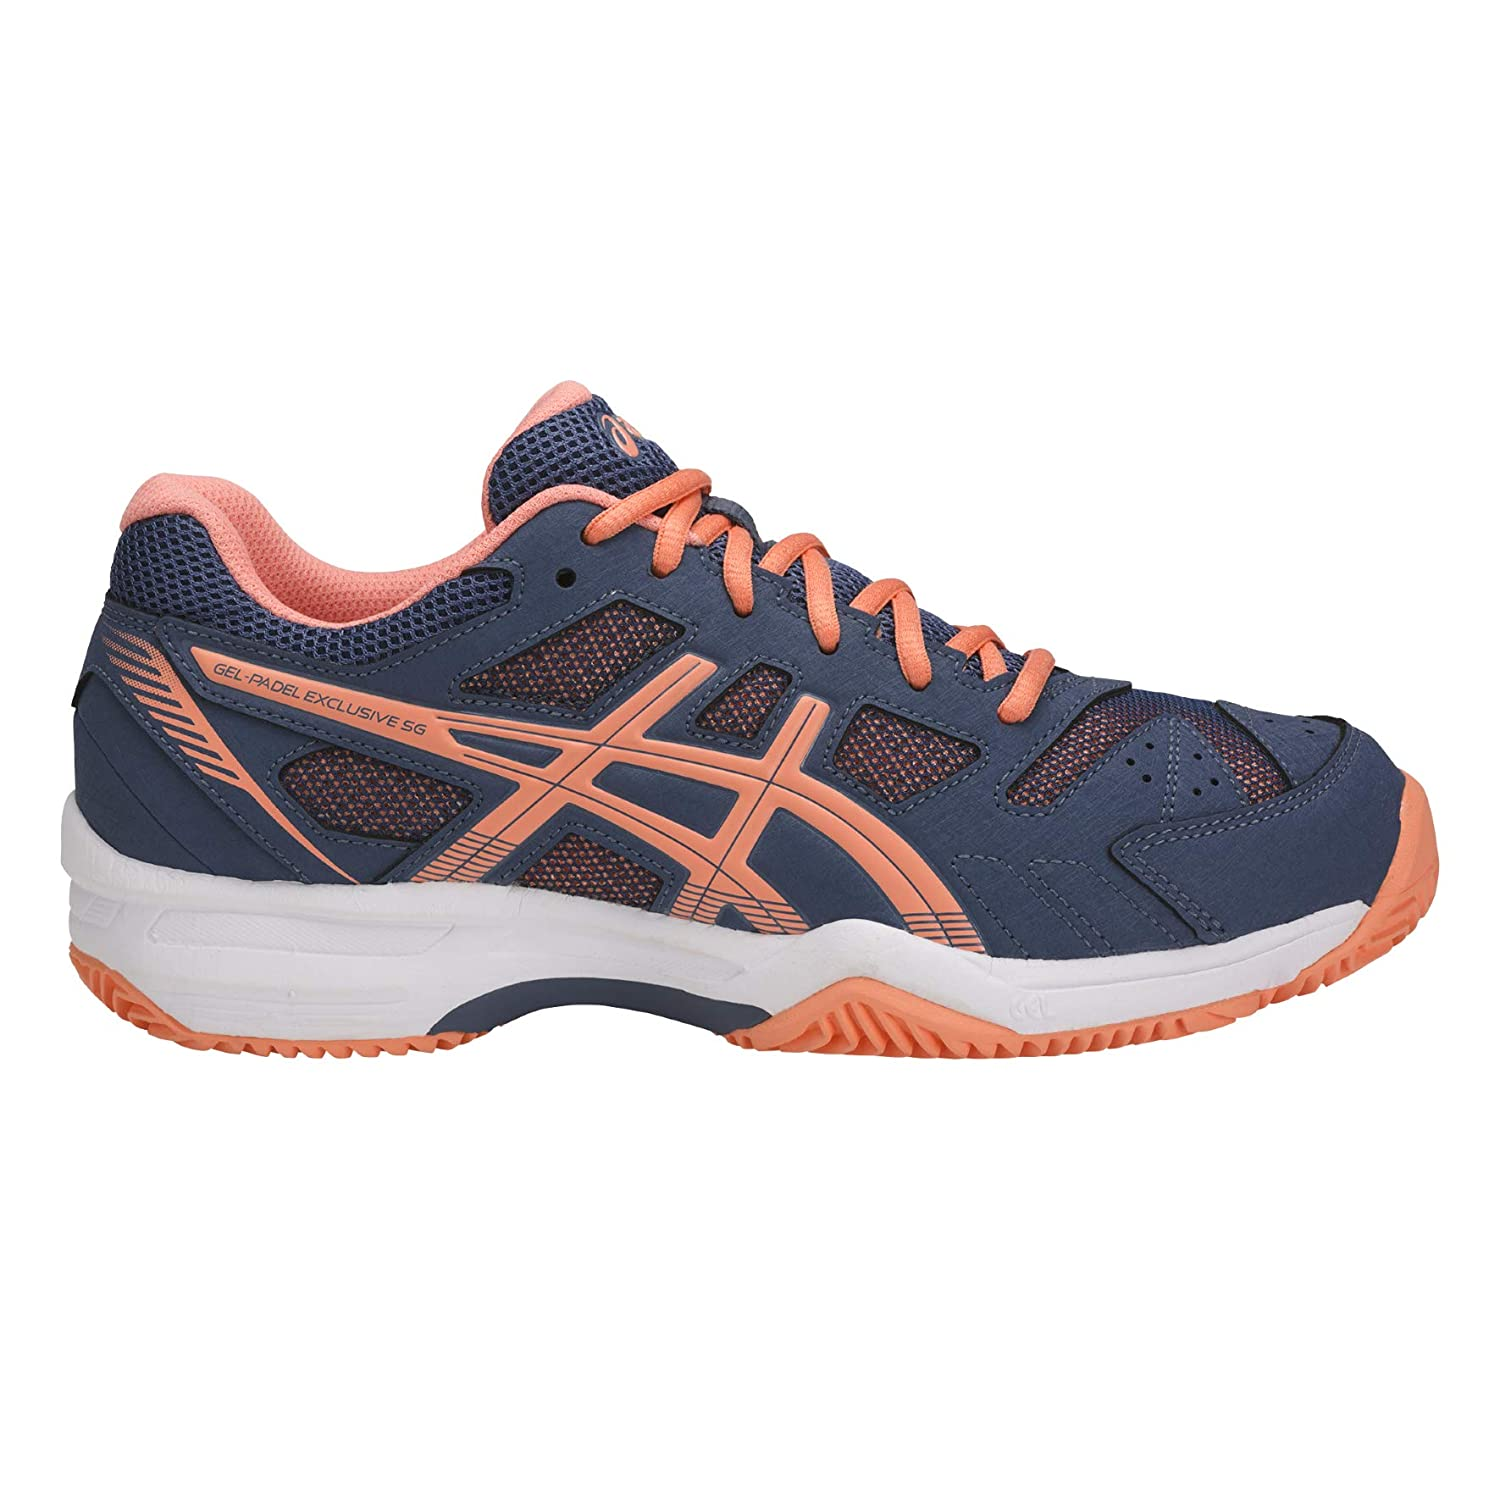 Asics Gel-Padel Exclusive 4 SG Smoke Blue/Canteloupe 41m: Amazon ...